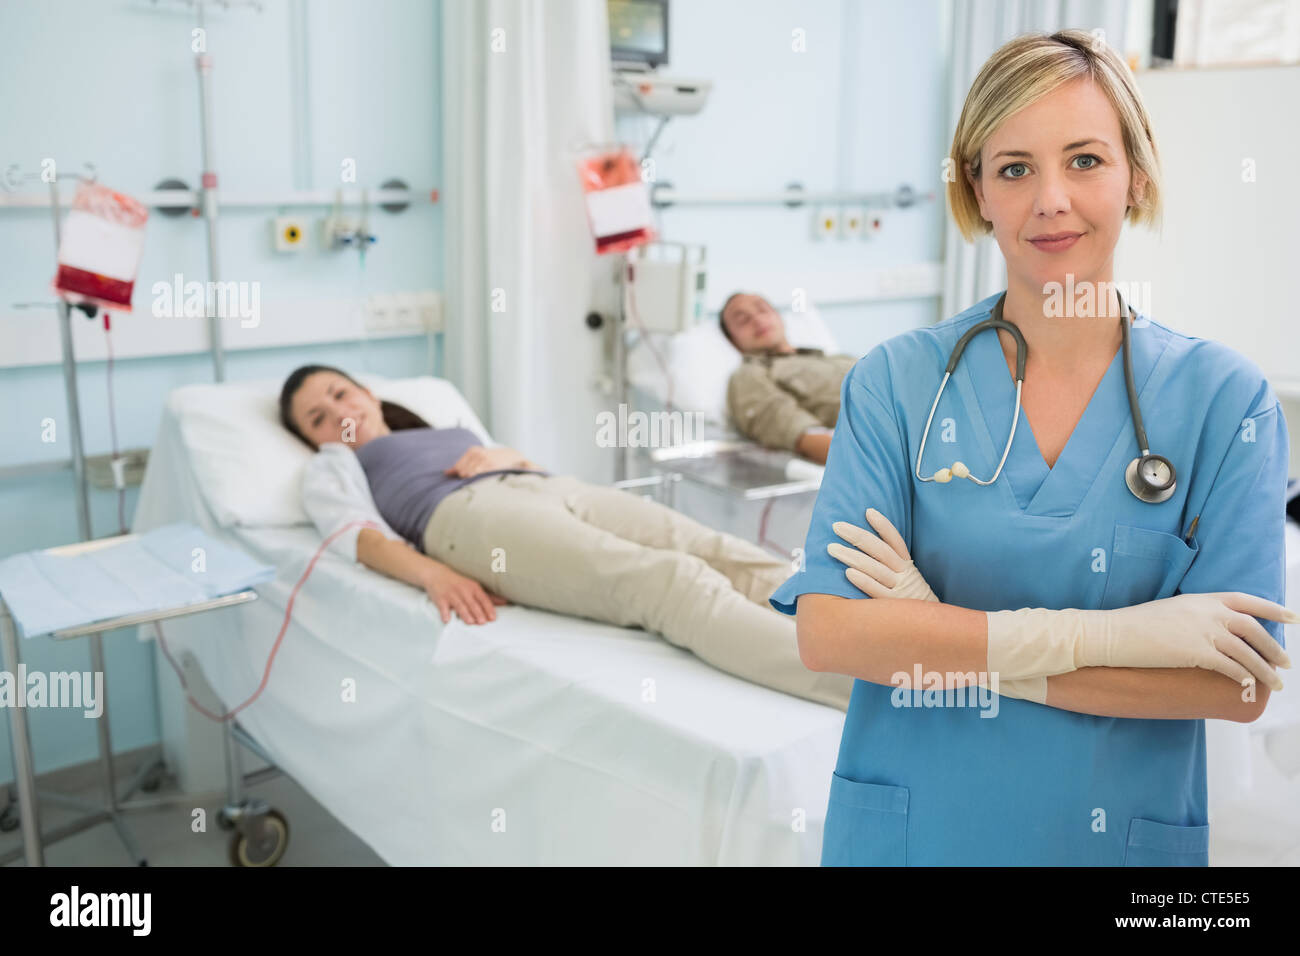 Nurse with arms crossed - Stock Image